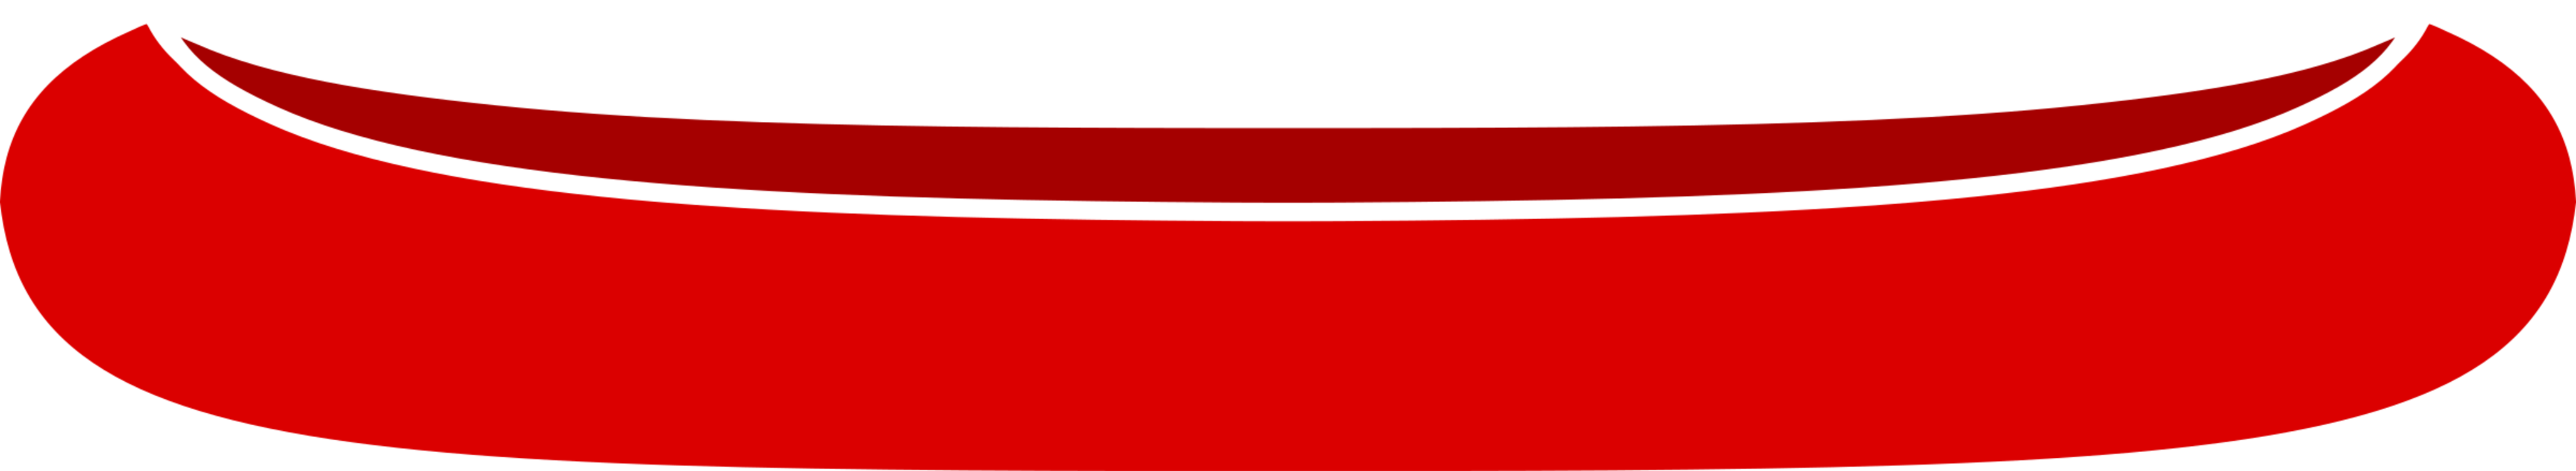 Area,Line,Red